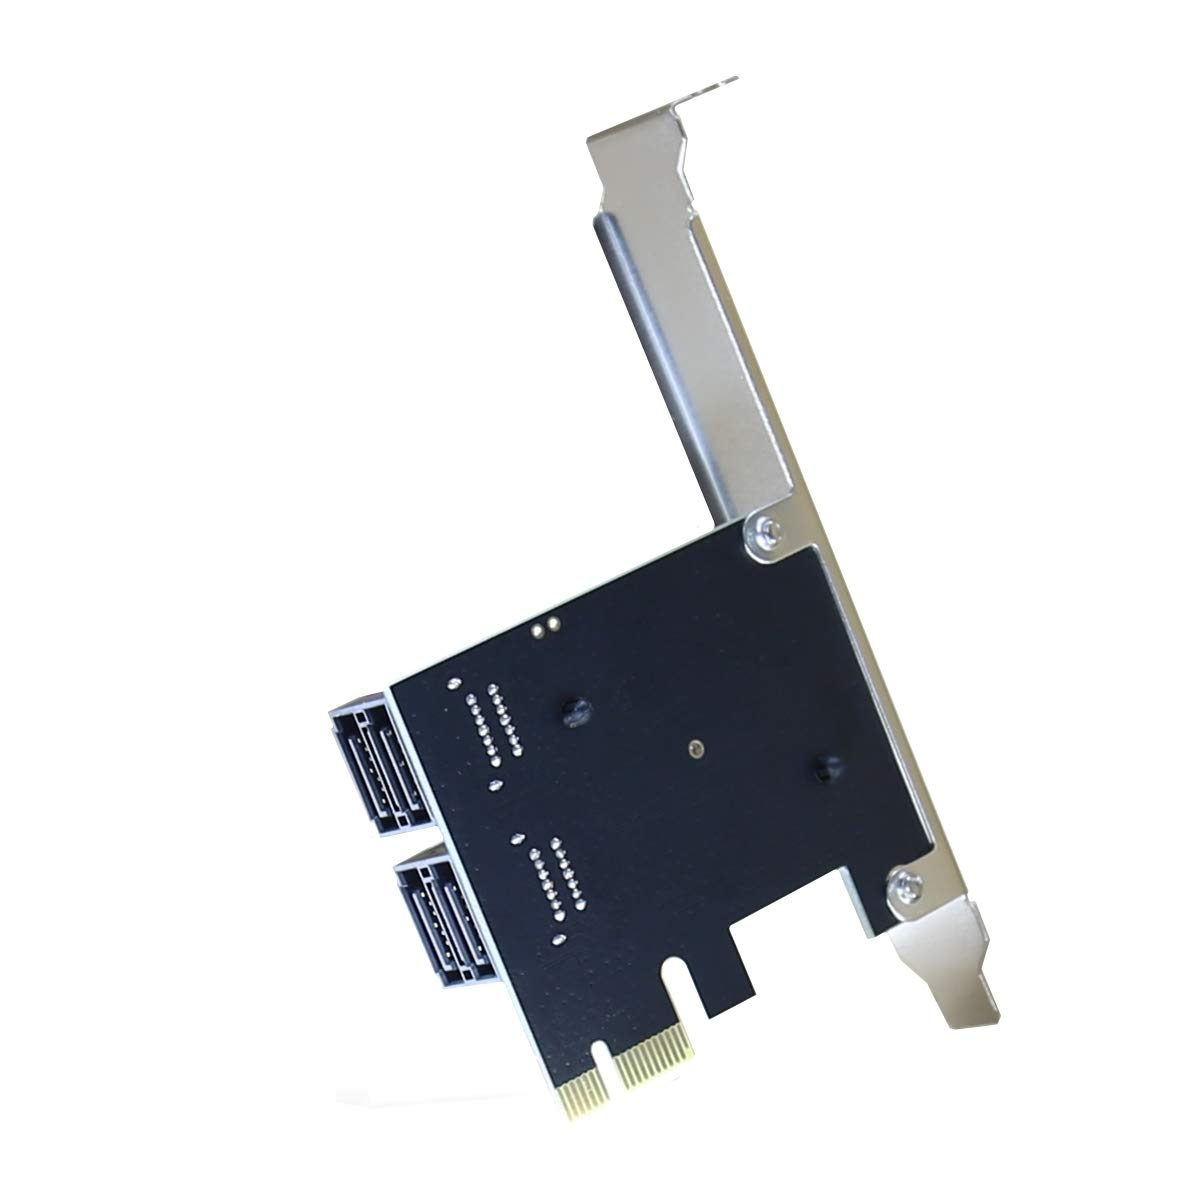 PCIe SATA Card 4 Port,Marvell 9215 Non-Raid 6Gbps PCI Express to SATA 3.0 Ports Expansion Controller ,Boot as System Disk, for Desktop PC Support SSD and HDD with Low Profile Bracket and 4 SATA Cable by YATENG (Image #5)